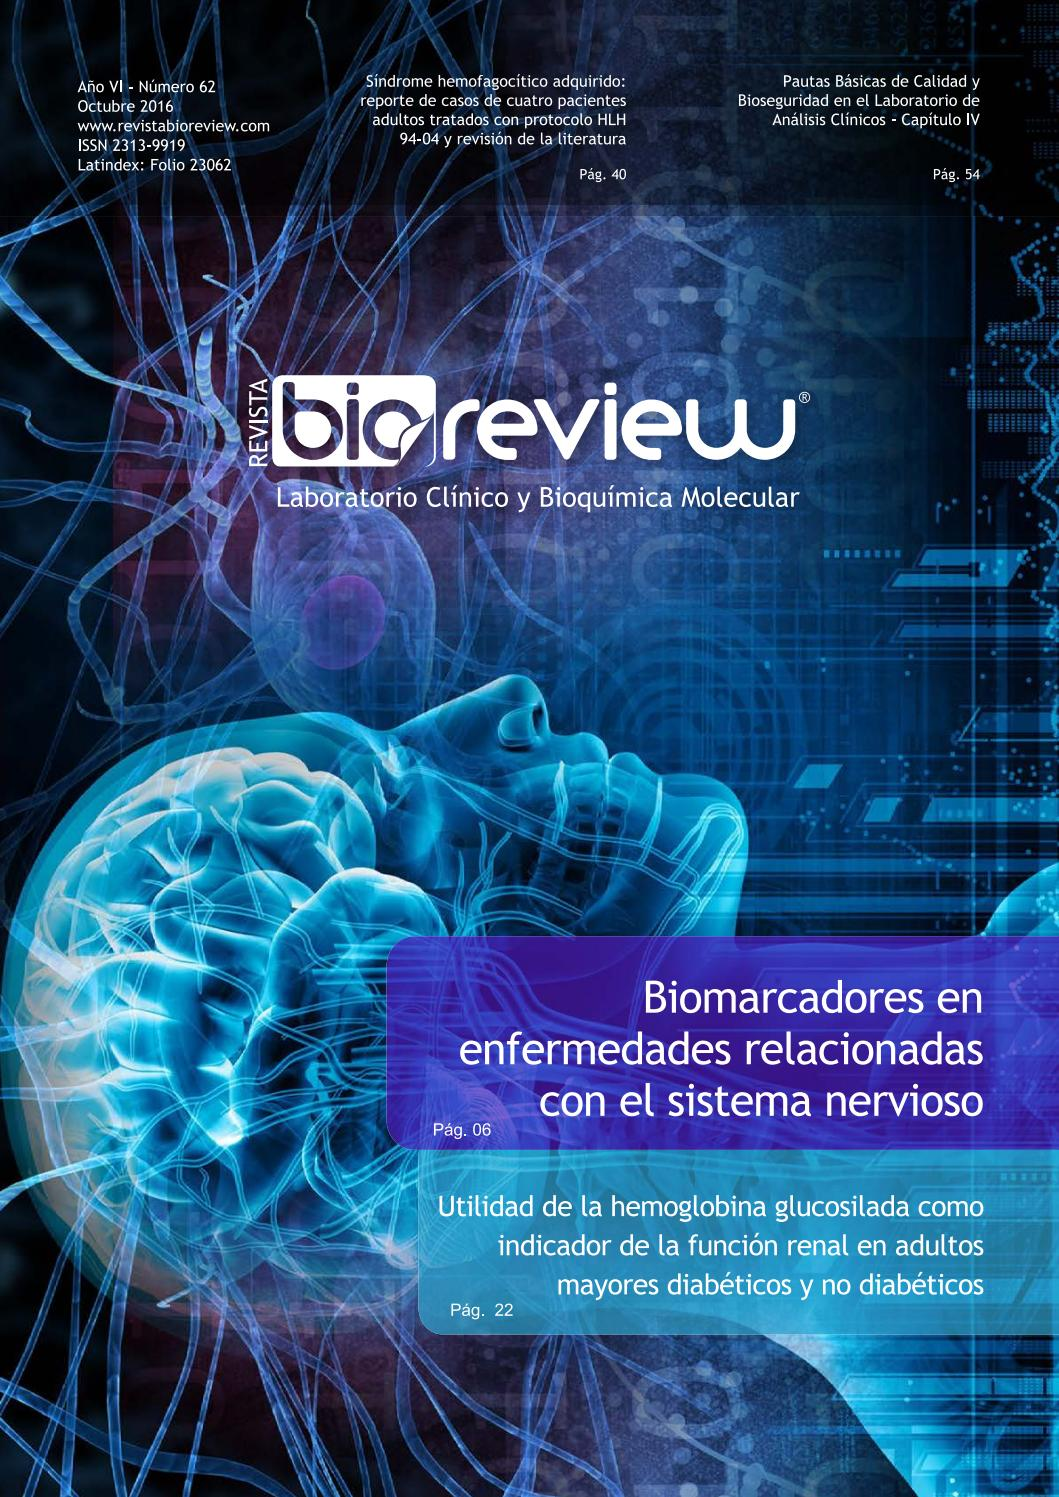 Revista Bioreview 62 Octubre 2016 by RW SA - issuu